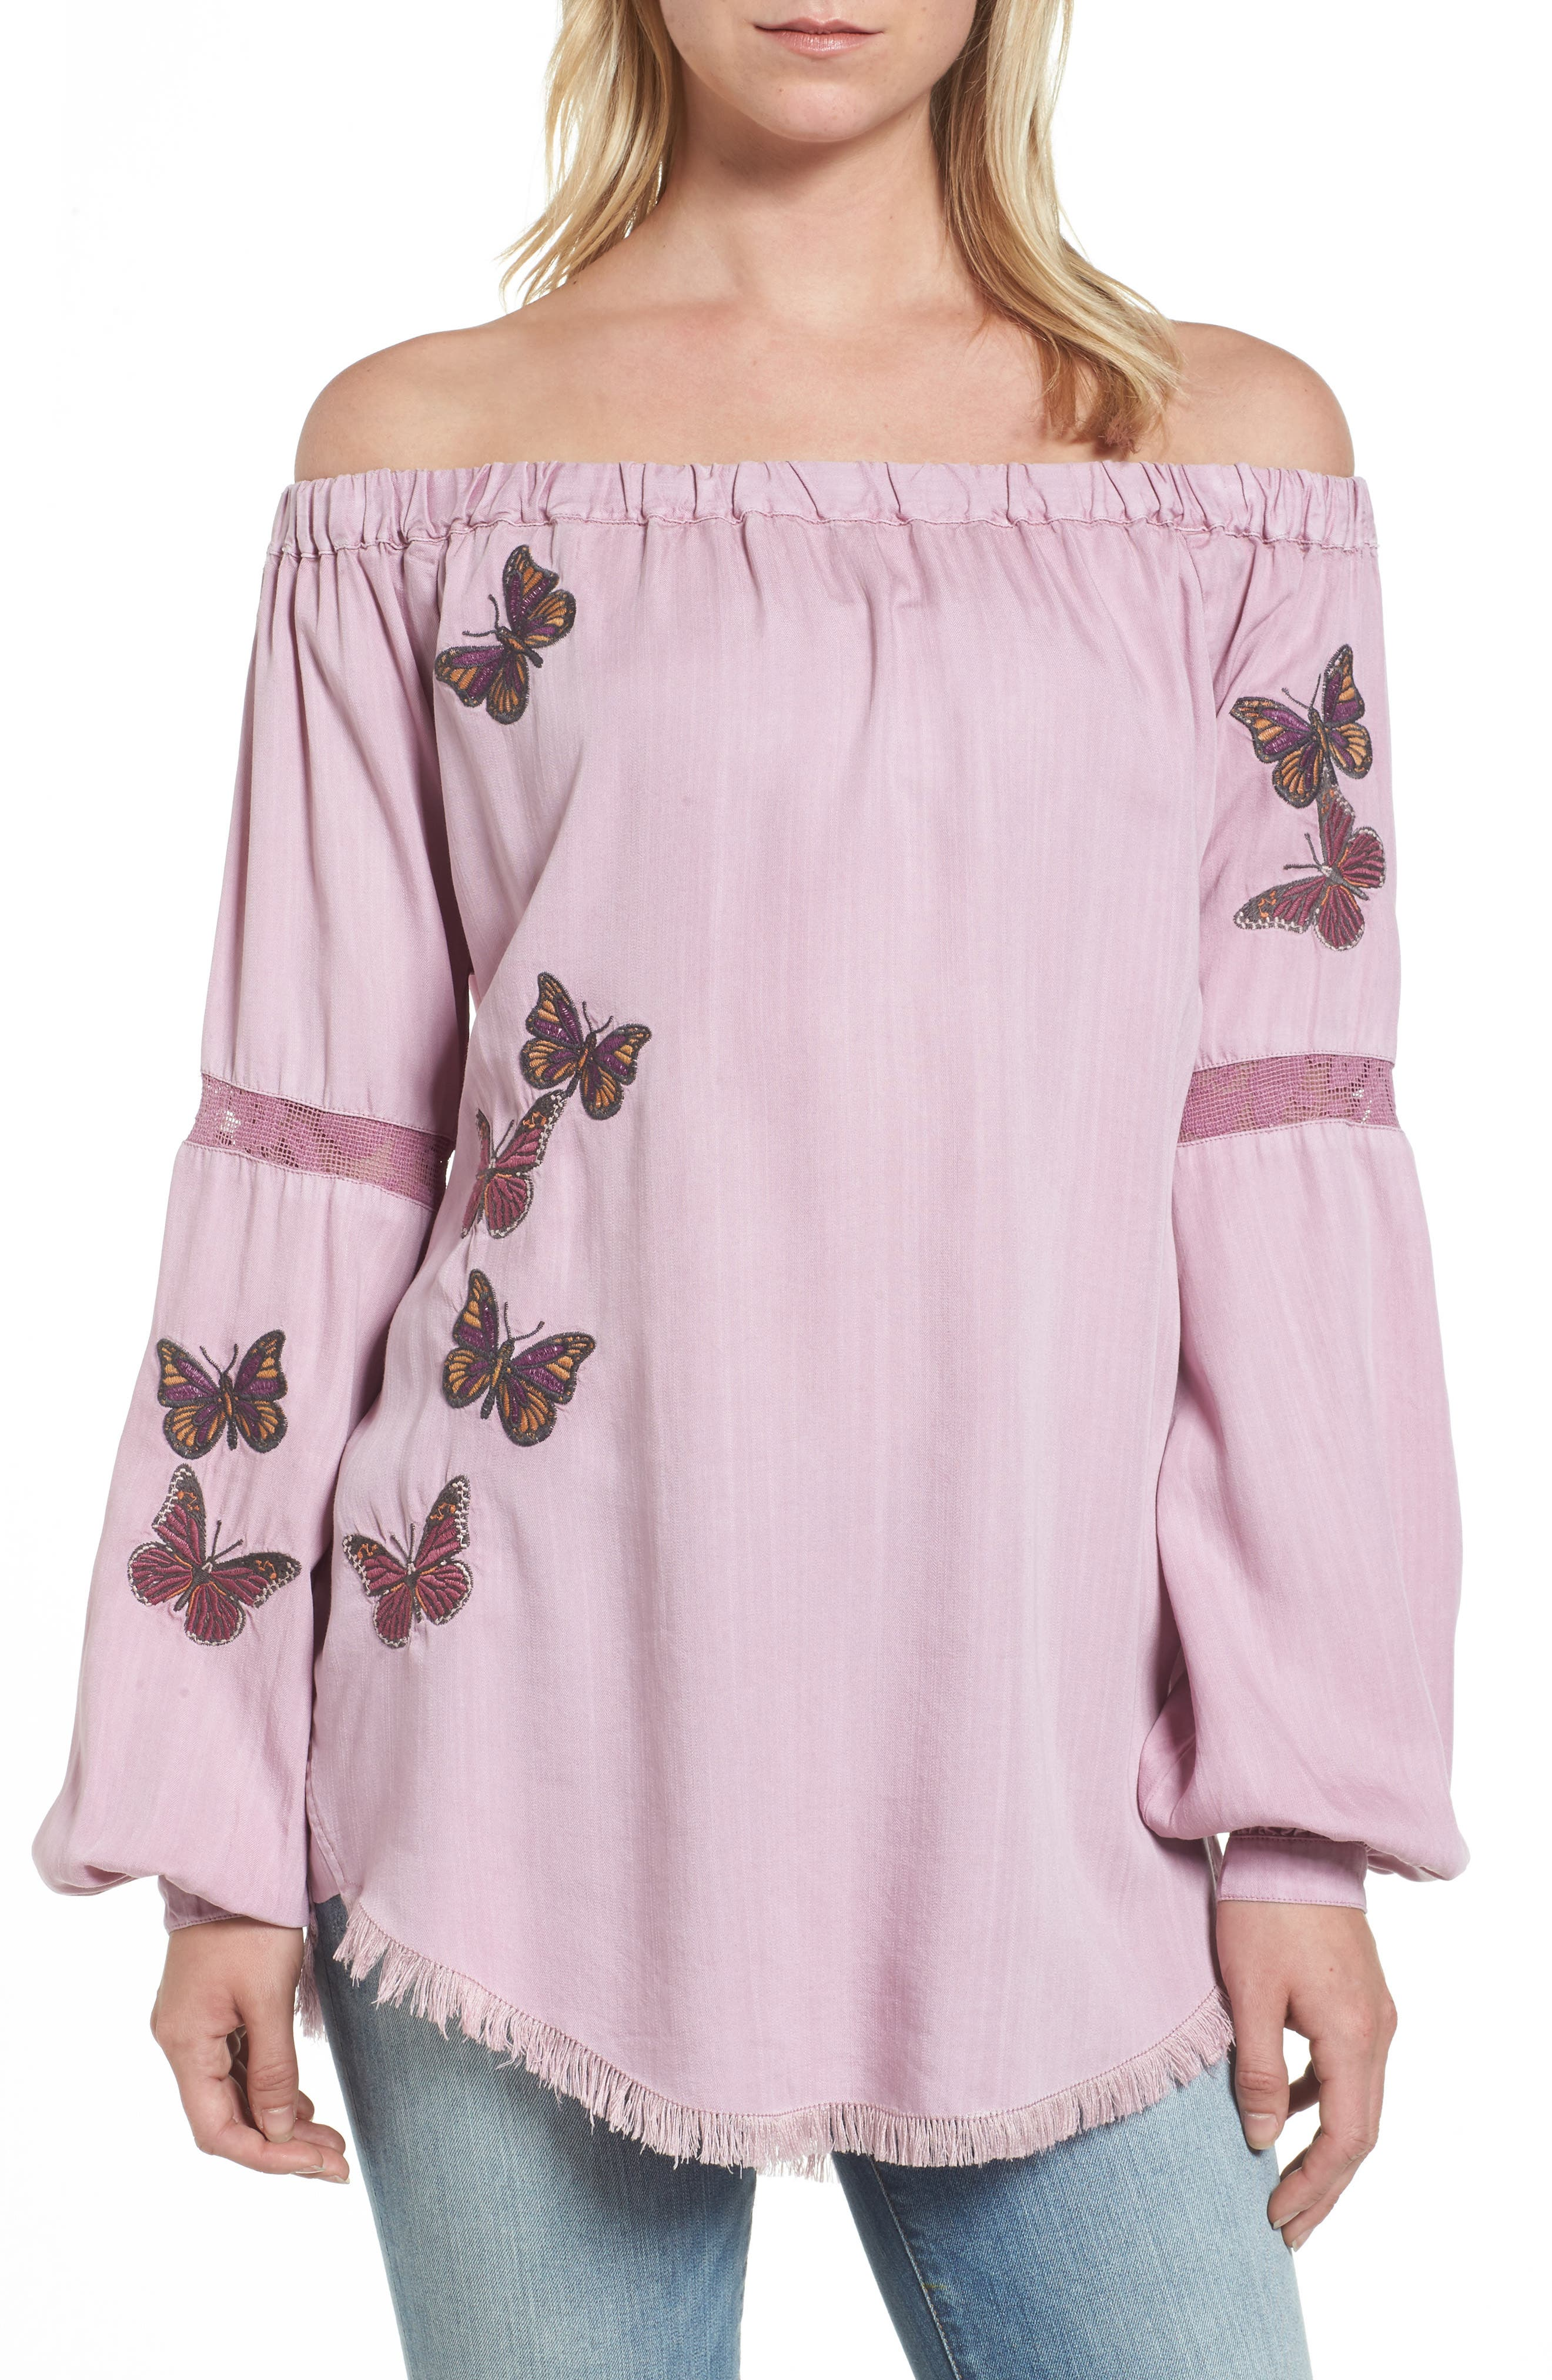 Main Image - Billy T Embroidered Off the Shoulder Top